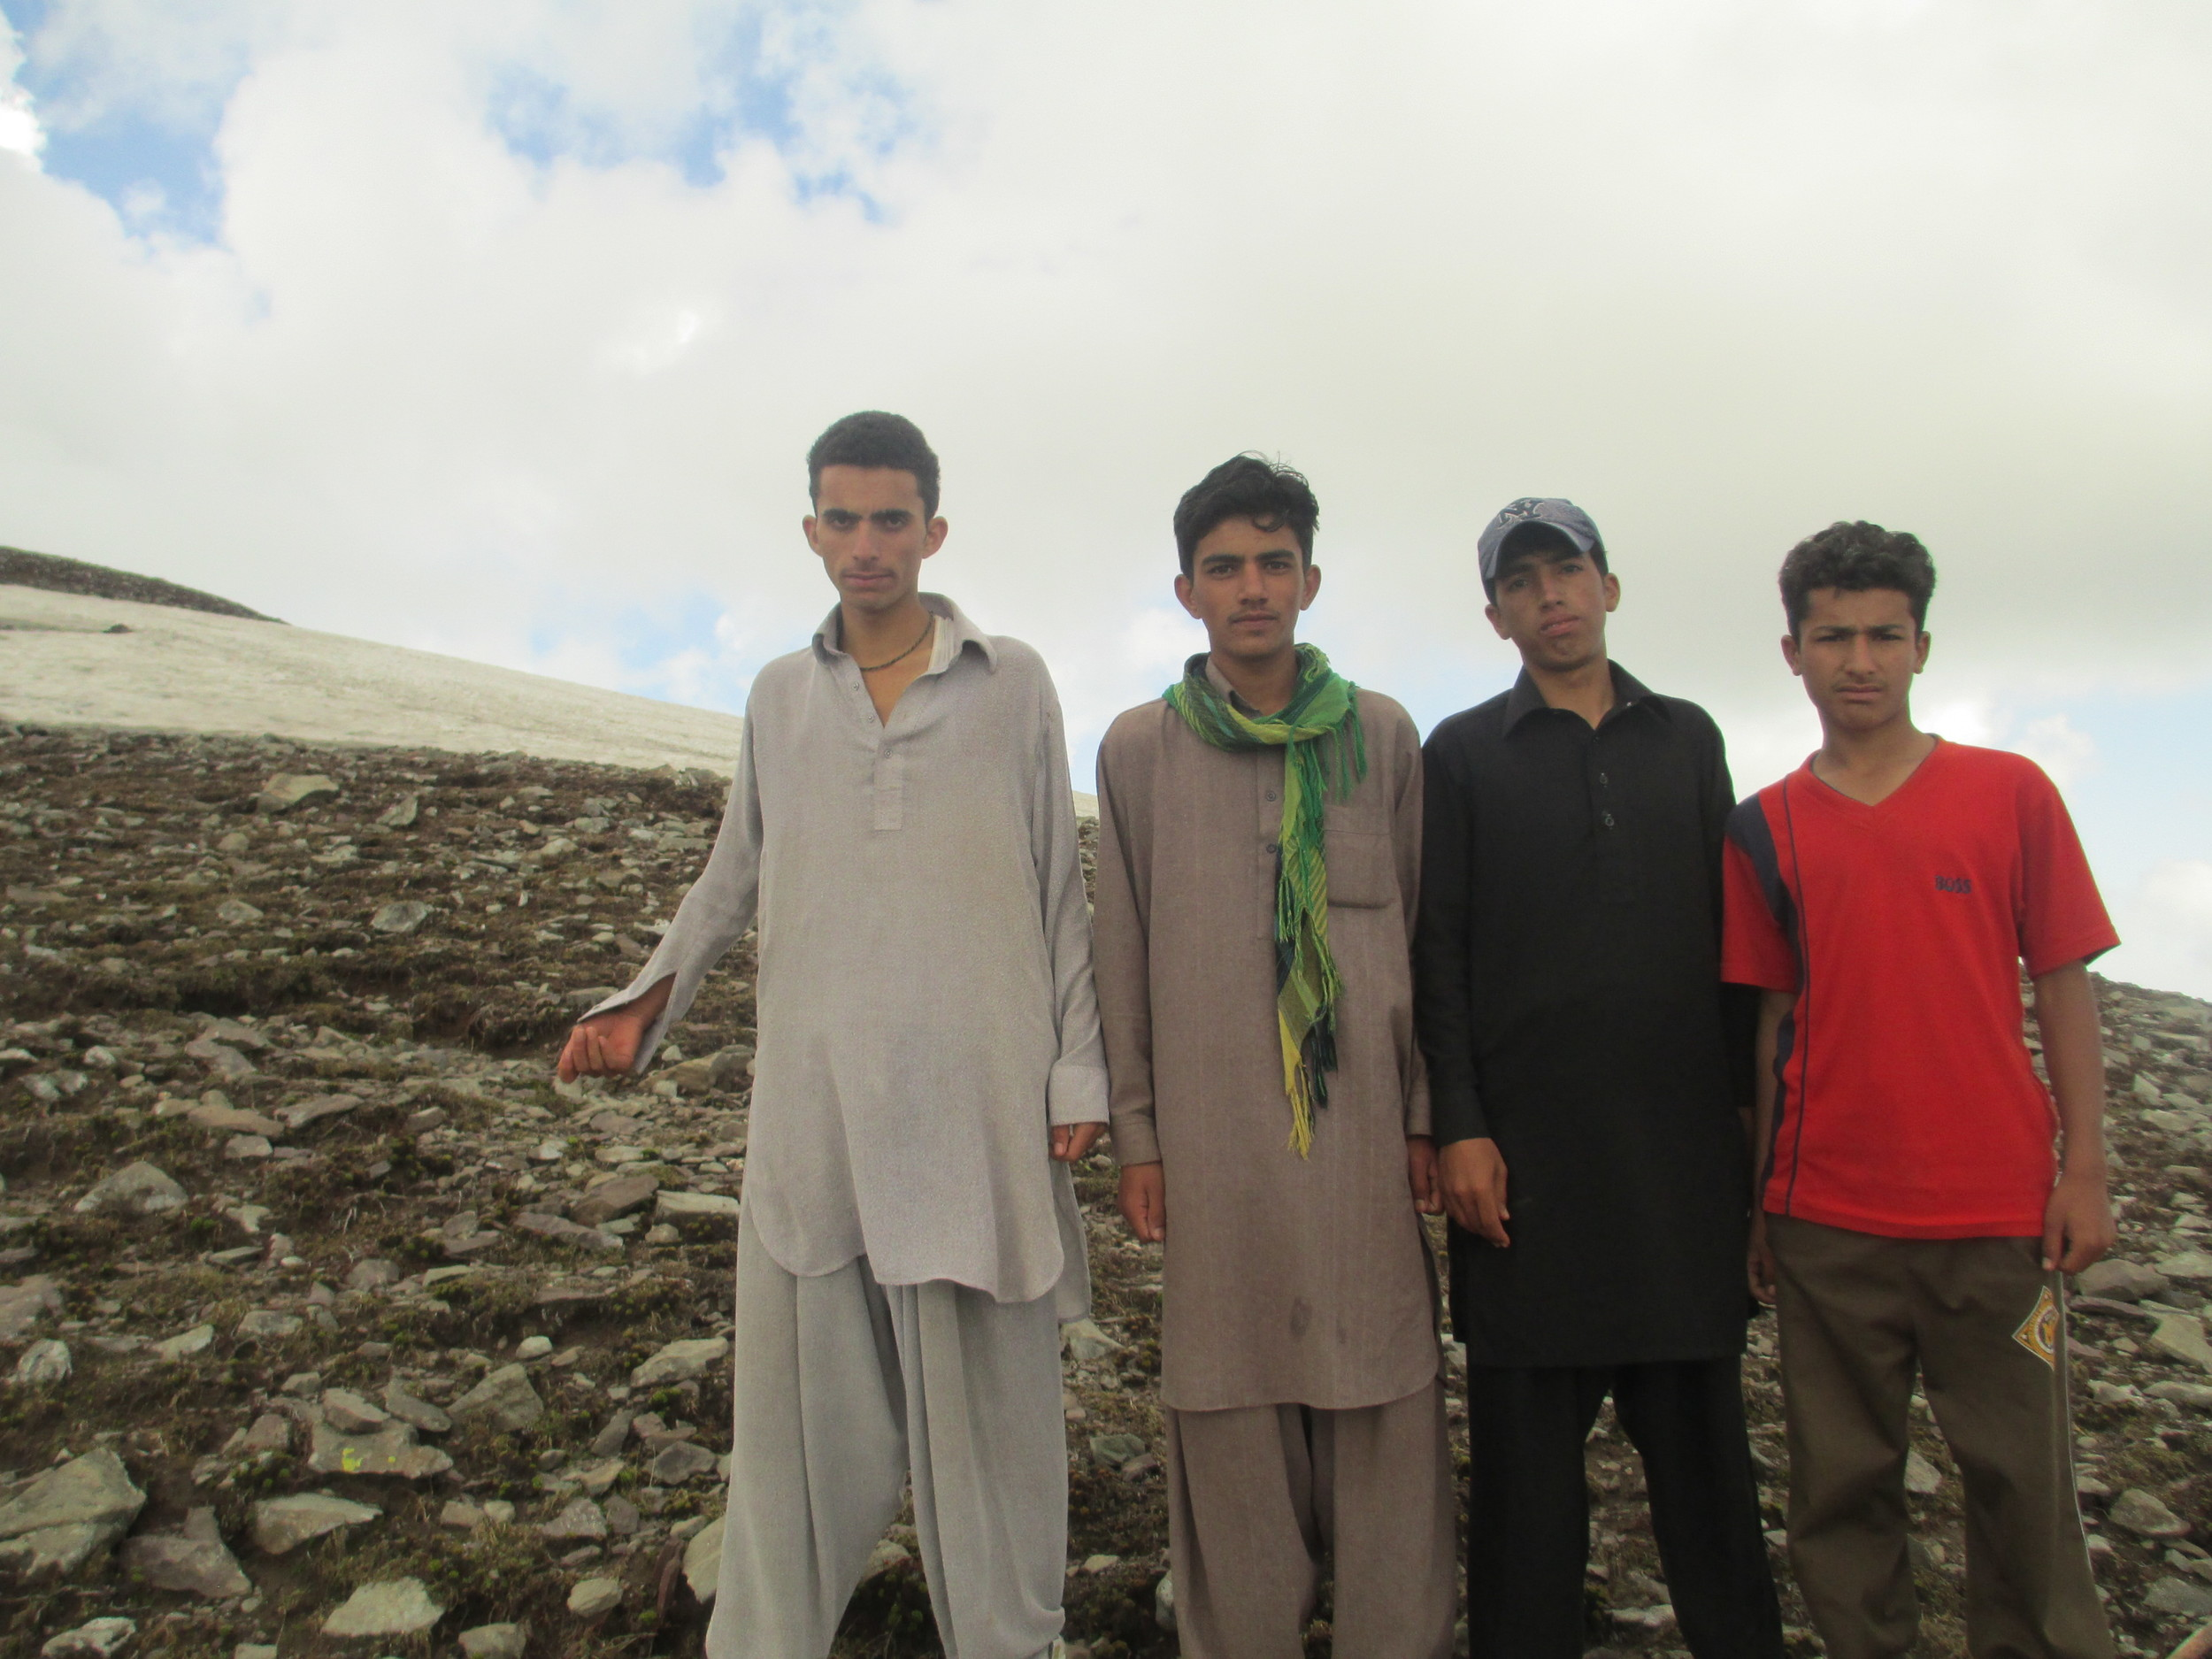 Kaghan valley 4 young boys I meet on Makra peak -3800m -out for a quick run!!